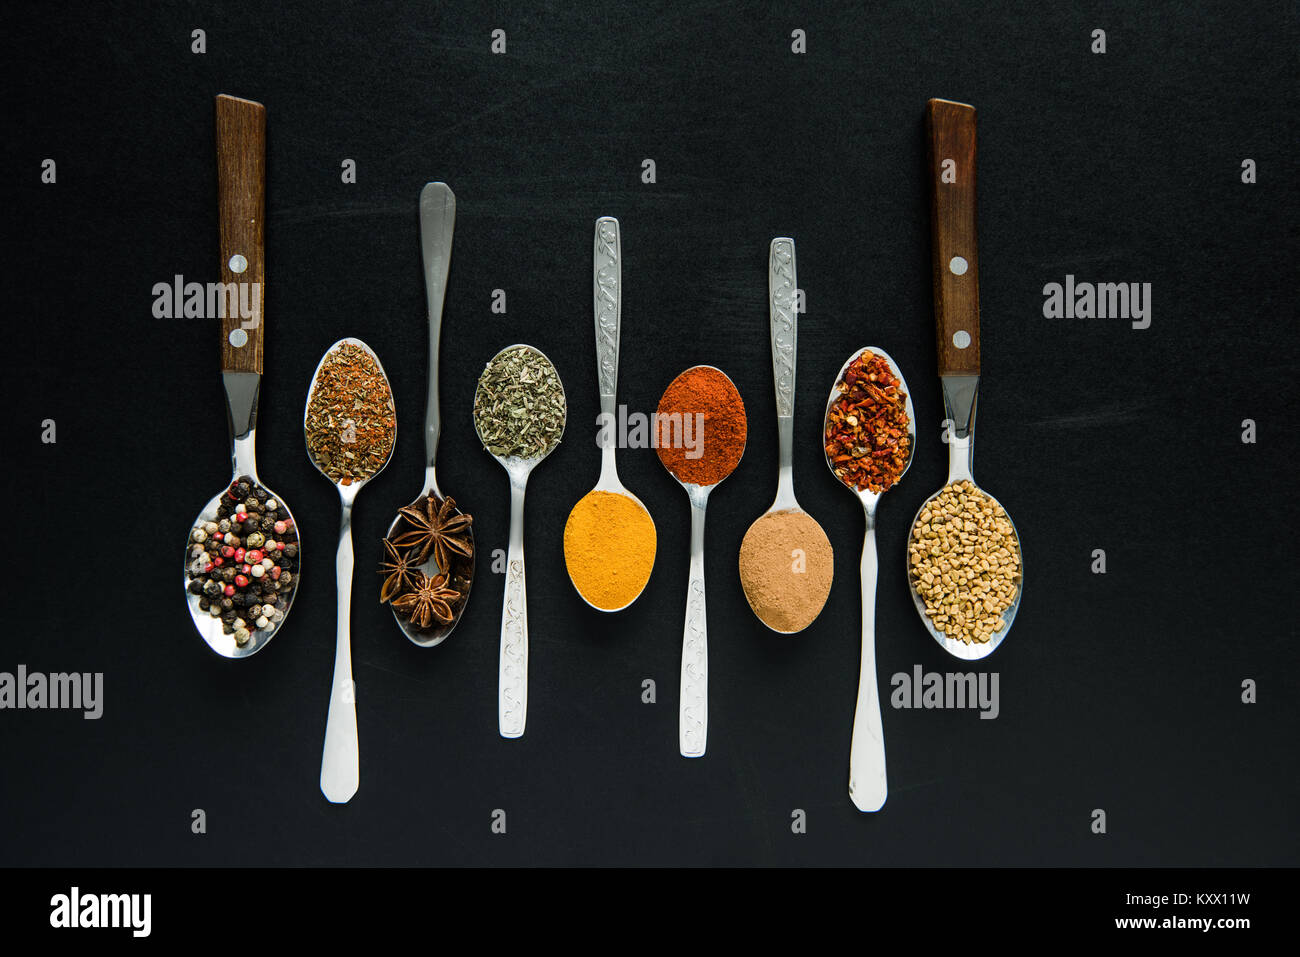 top view of various spices and herbs in metal spoons isolated on black - Stock Image